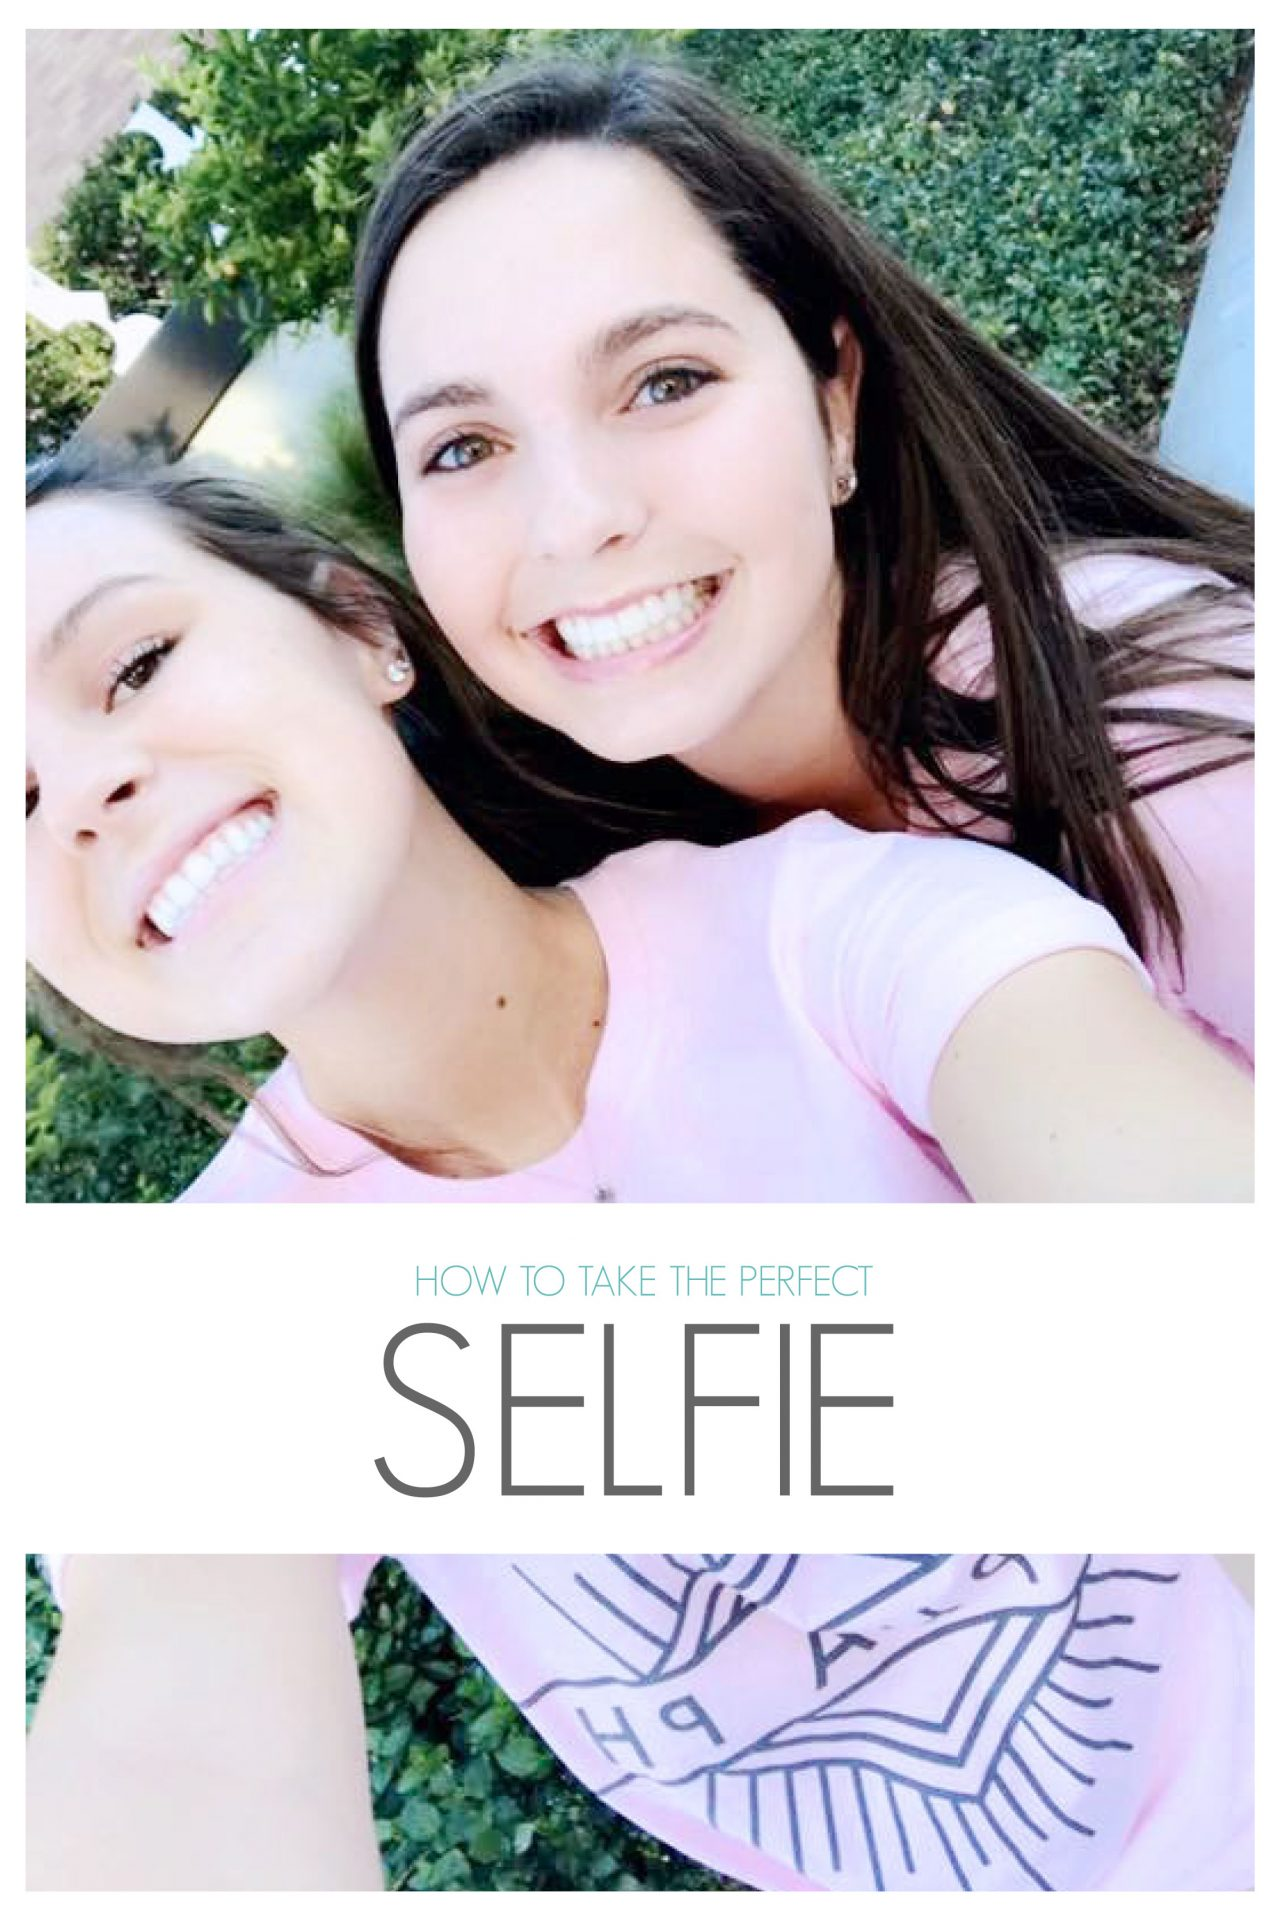 Selfie 101 Featured Image 1